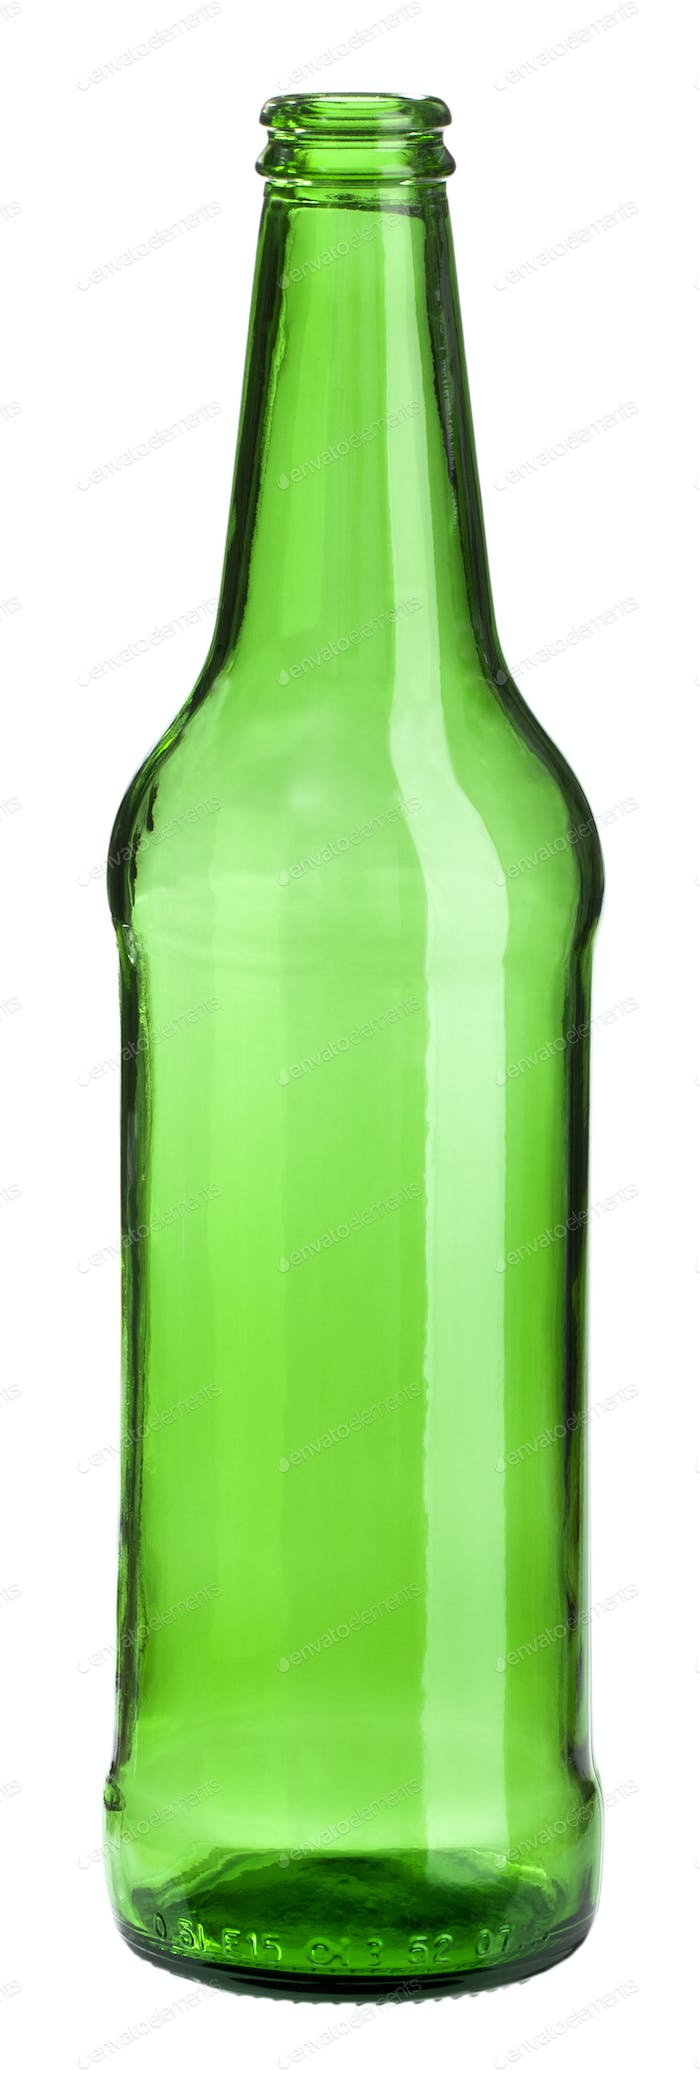 empty green bottle